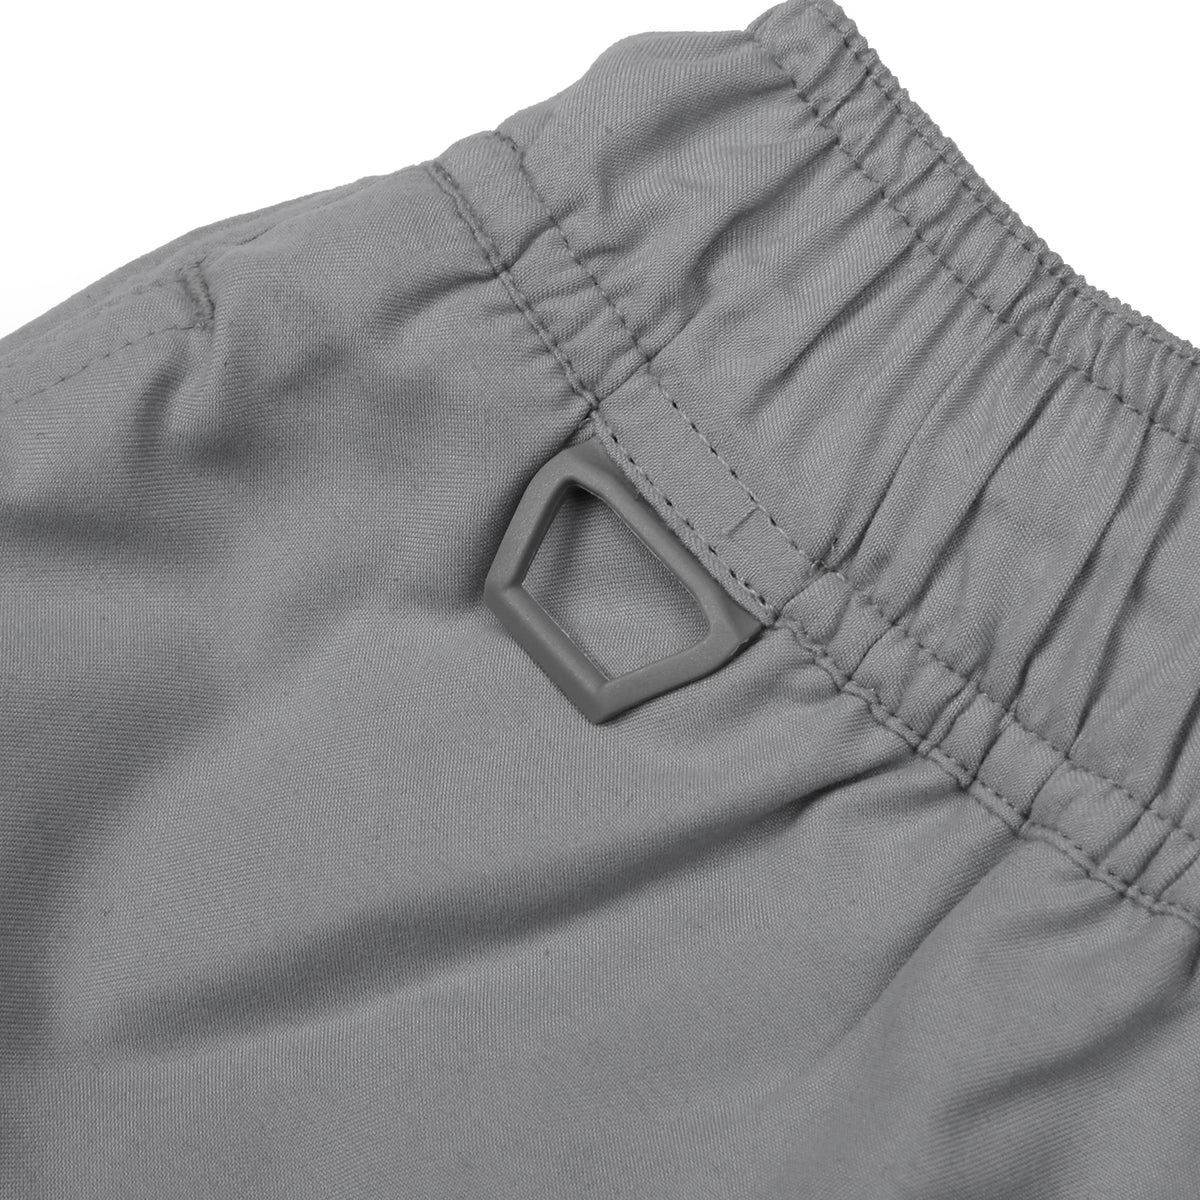 CAPE HEIGHTS - CALEB SHORTS - QUARRY